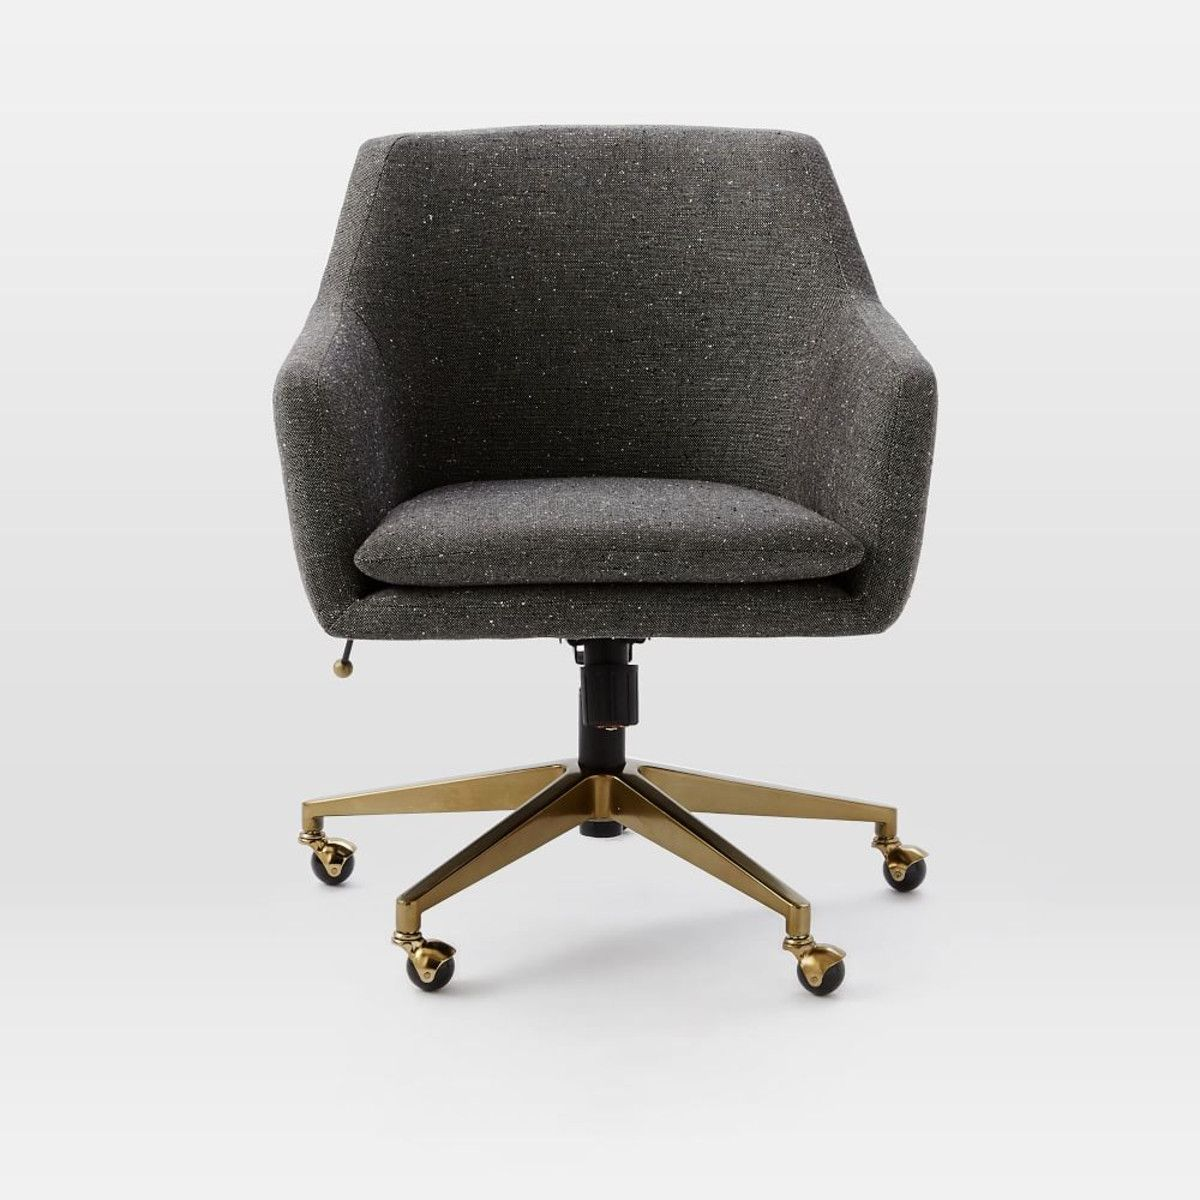 upholstered office chairs. Seating Option Throughout:Helvetica Upholstered Office Chair | West Elm Chairs